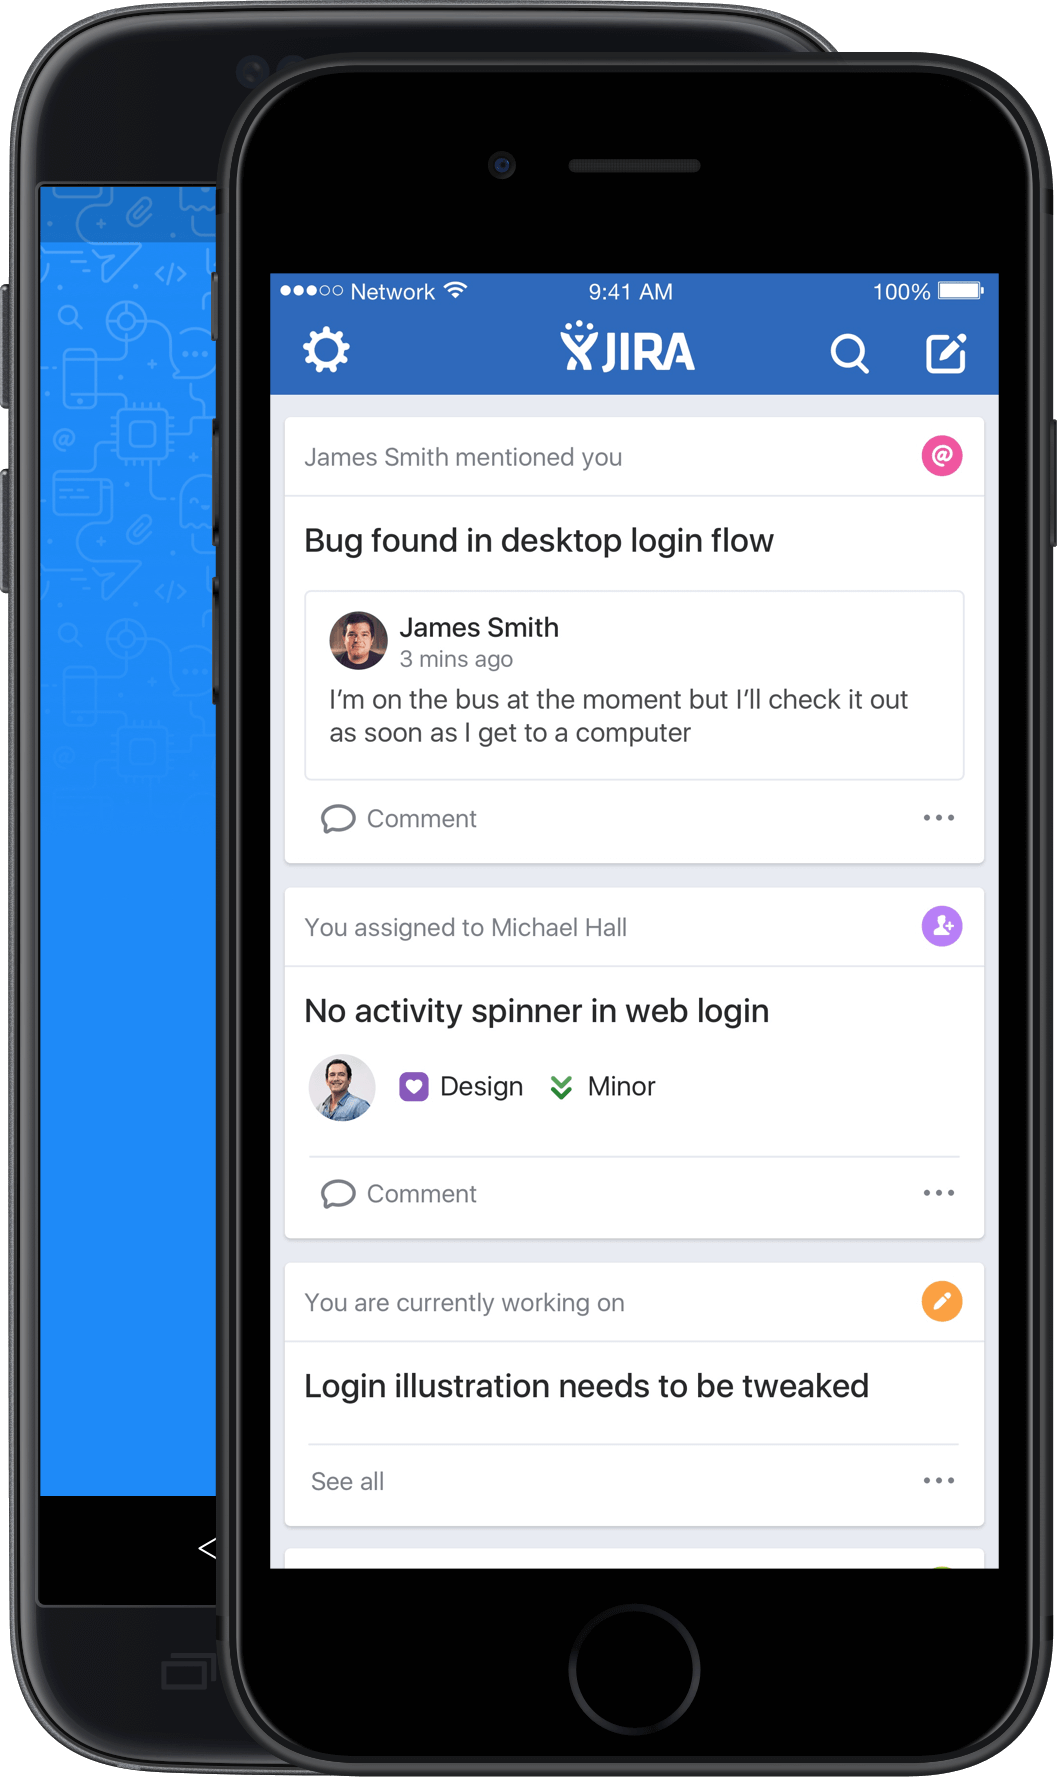 JIRA Software for iOS - Home screen